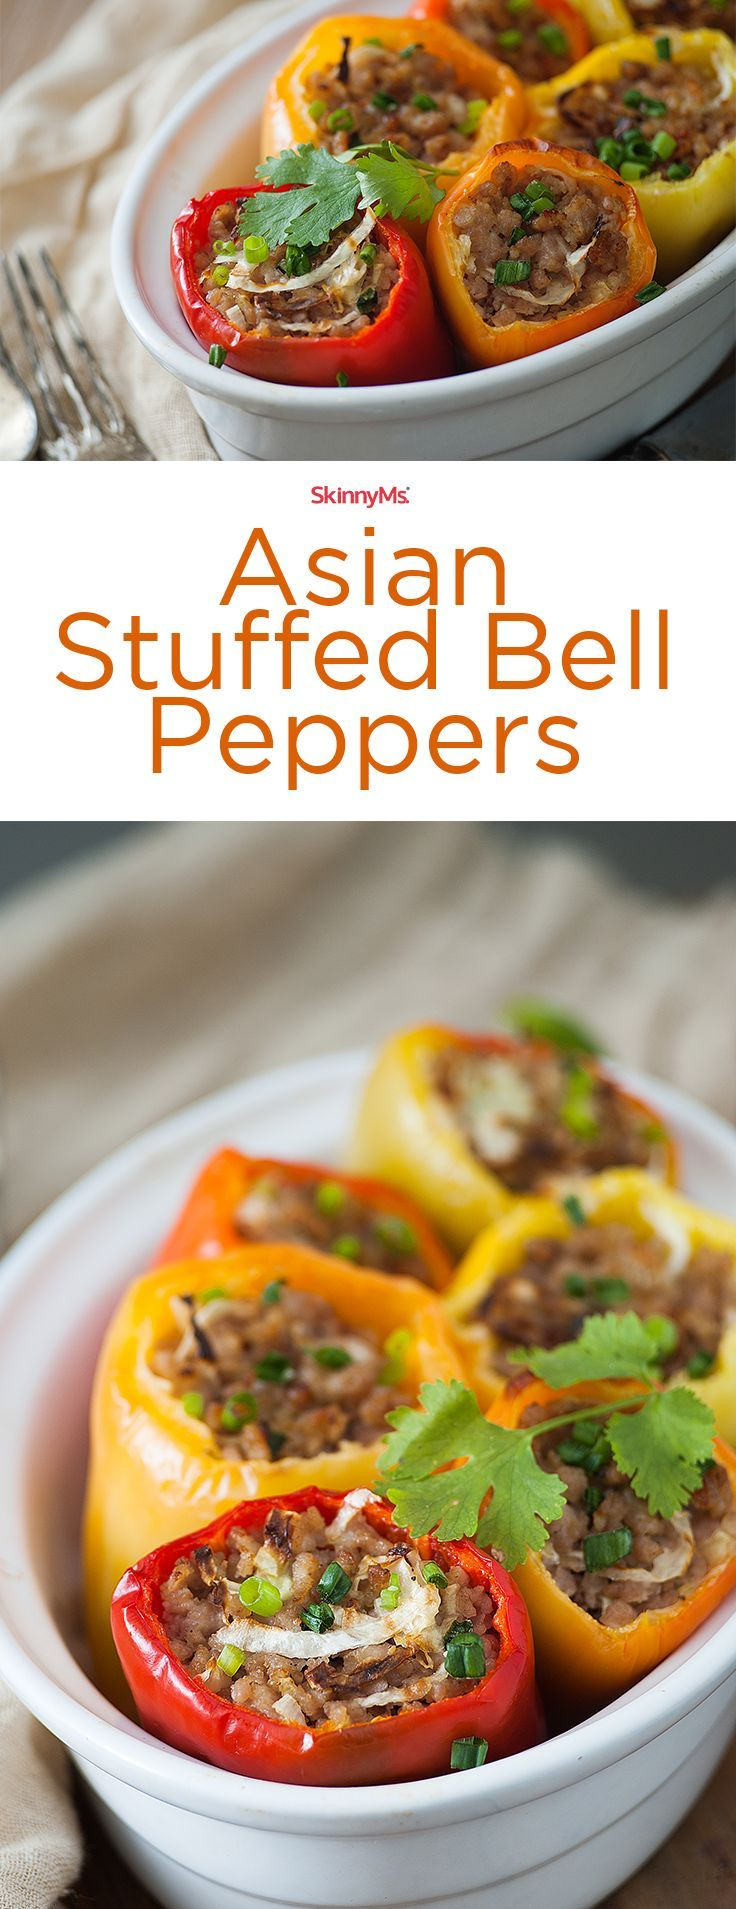 Throwing this Asian Stuffed Bell Peppers Recipe together takes less than waiting for food delivery, and is guaranteed to please your family even more!